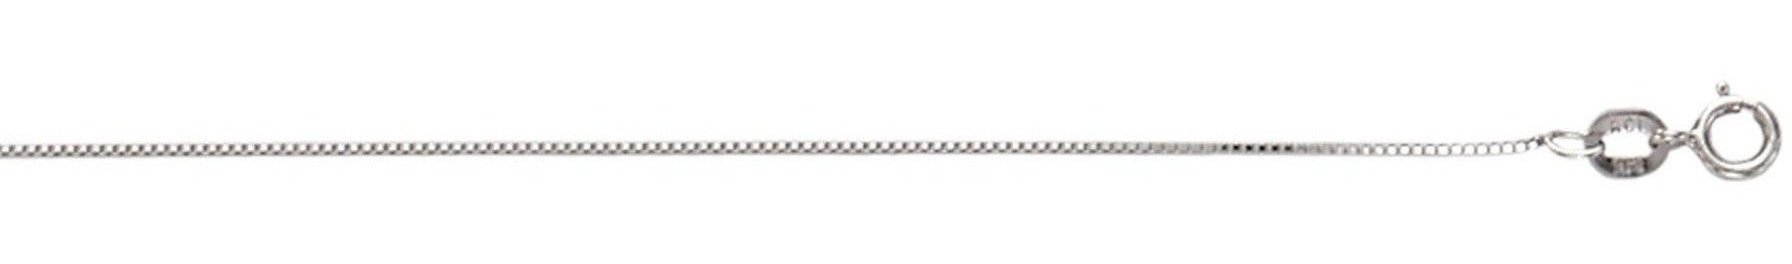 "16"" 10K White Gold 0.6mm (0.02"") Polished Box Chain w/ Spring Ring Clasp"